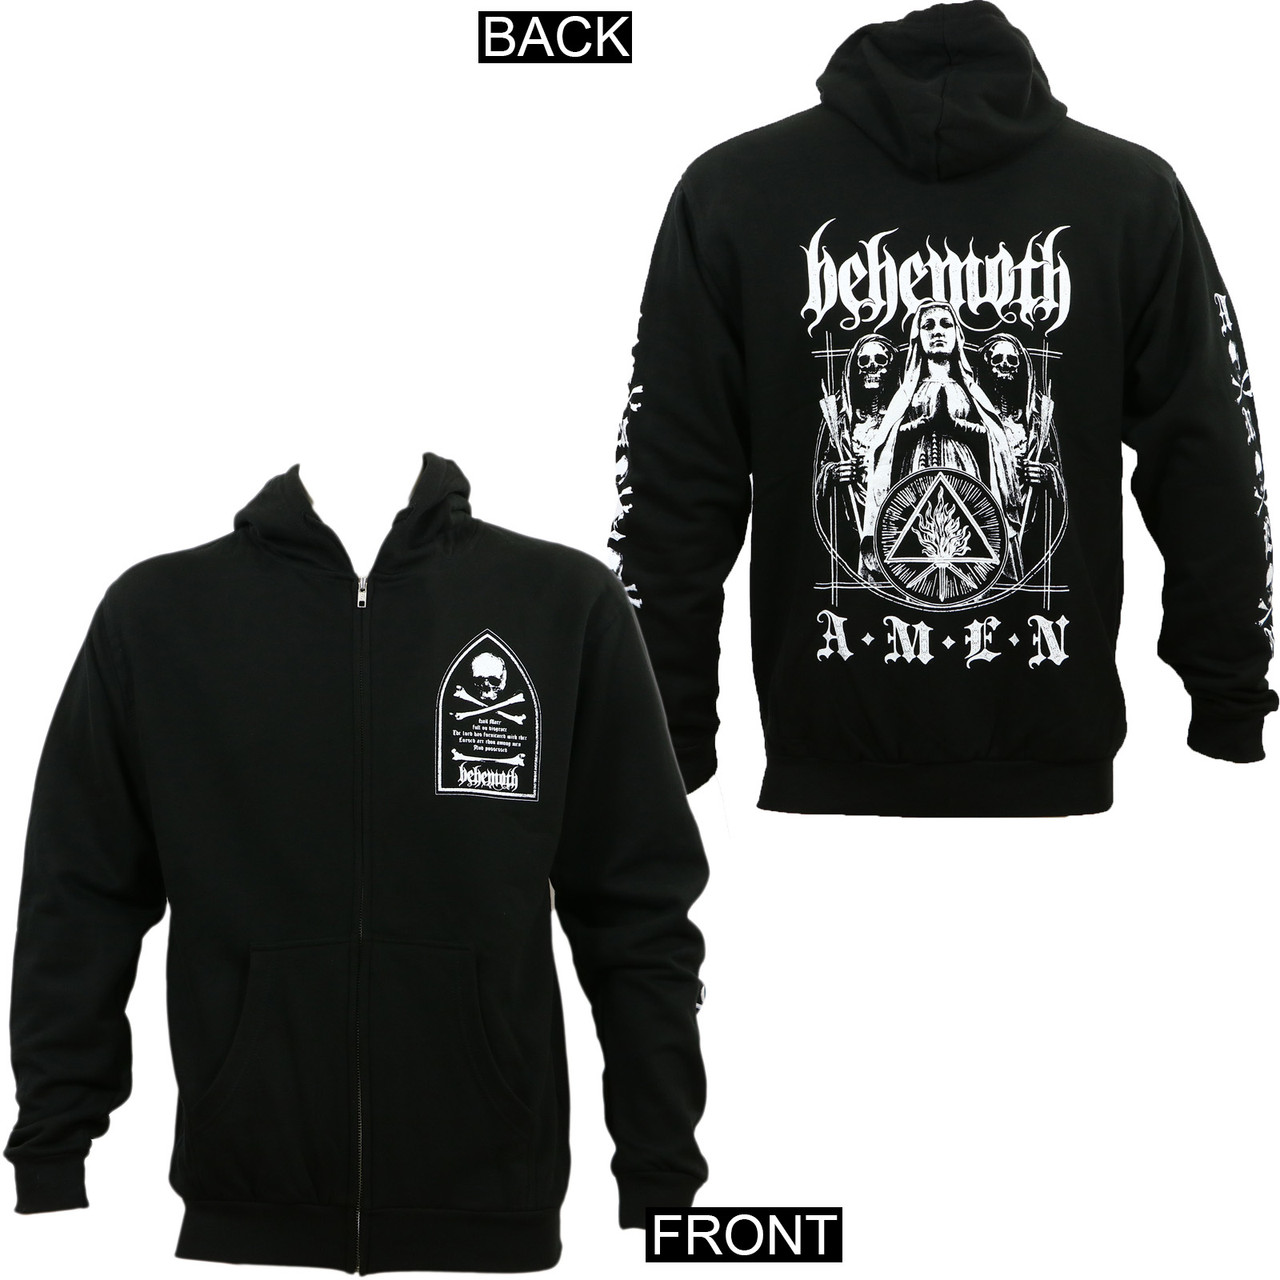 https://d3d71ba2asa5oz.cloudfront.net/12013655/images/10087316%20behemoth%20amen%20zip%20up%20hoodie%20(4).jpg